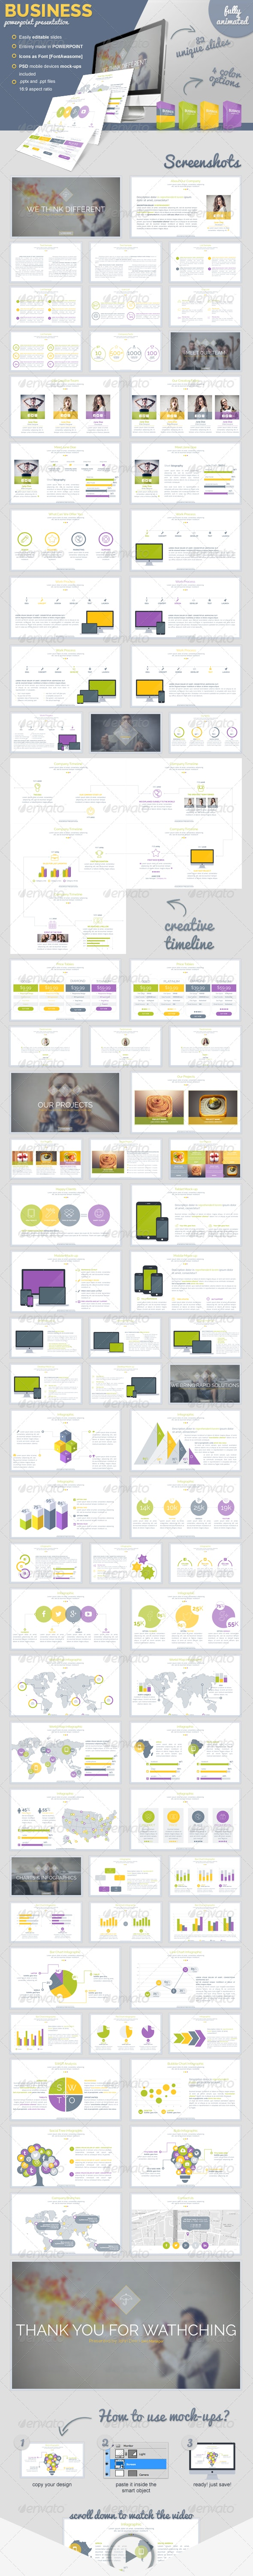 Business Powerpoint Presentation - PowerPoint Templates Presentation Templates